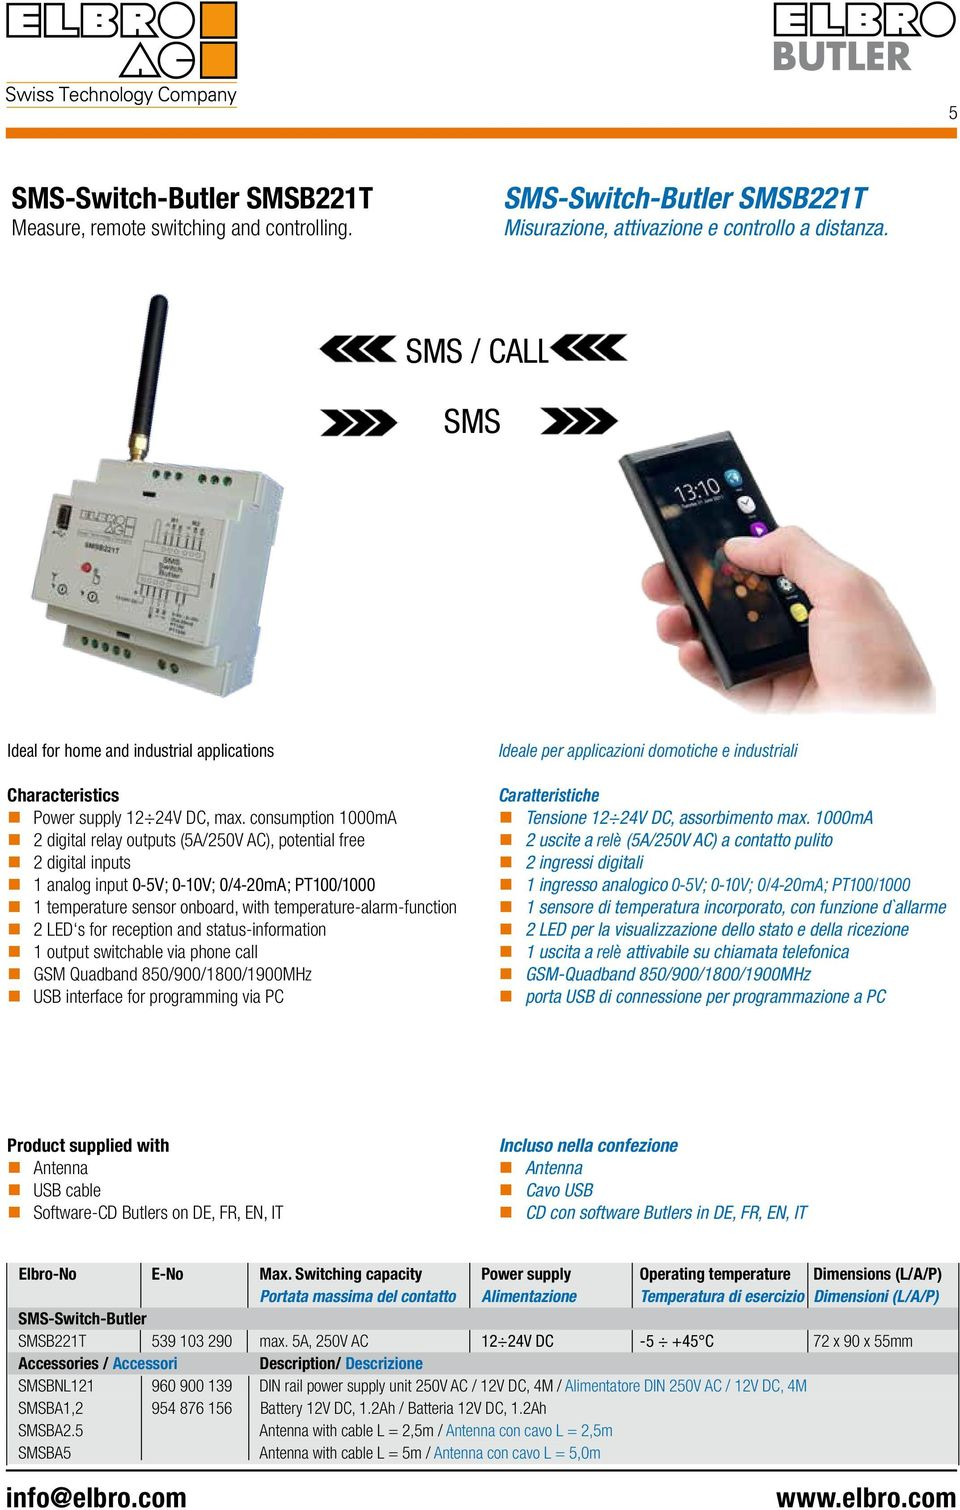 2 LED s for reception and status-information 1 output switchable via phone call GSM Quadband 850/900/1800/1900MHz USB interface for programming via PC Ideale per applicazioni domotiche e industriali